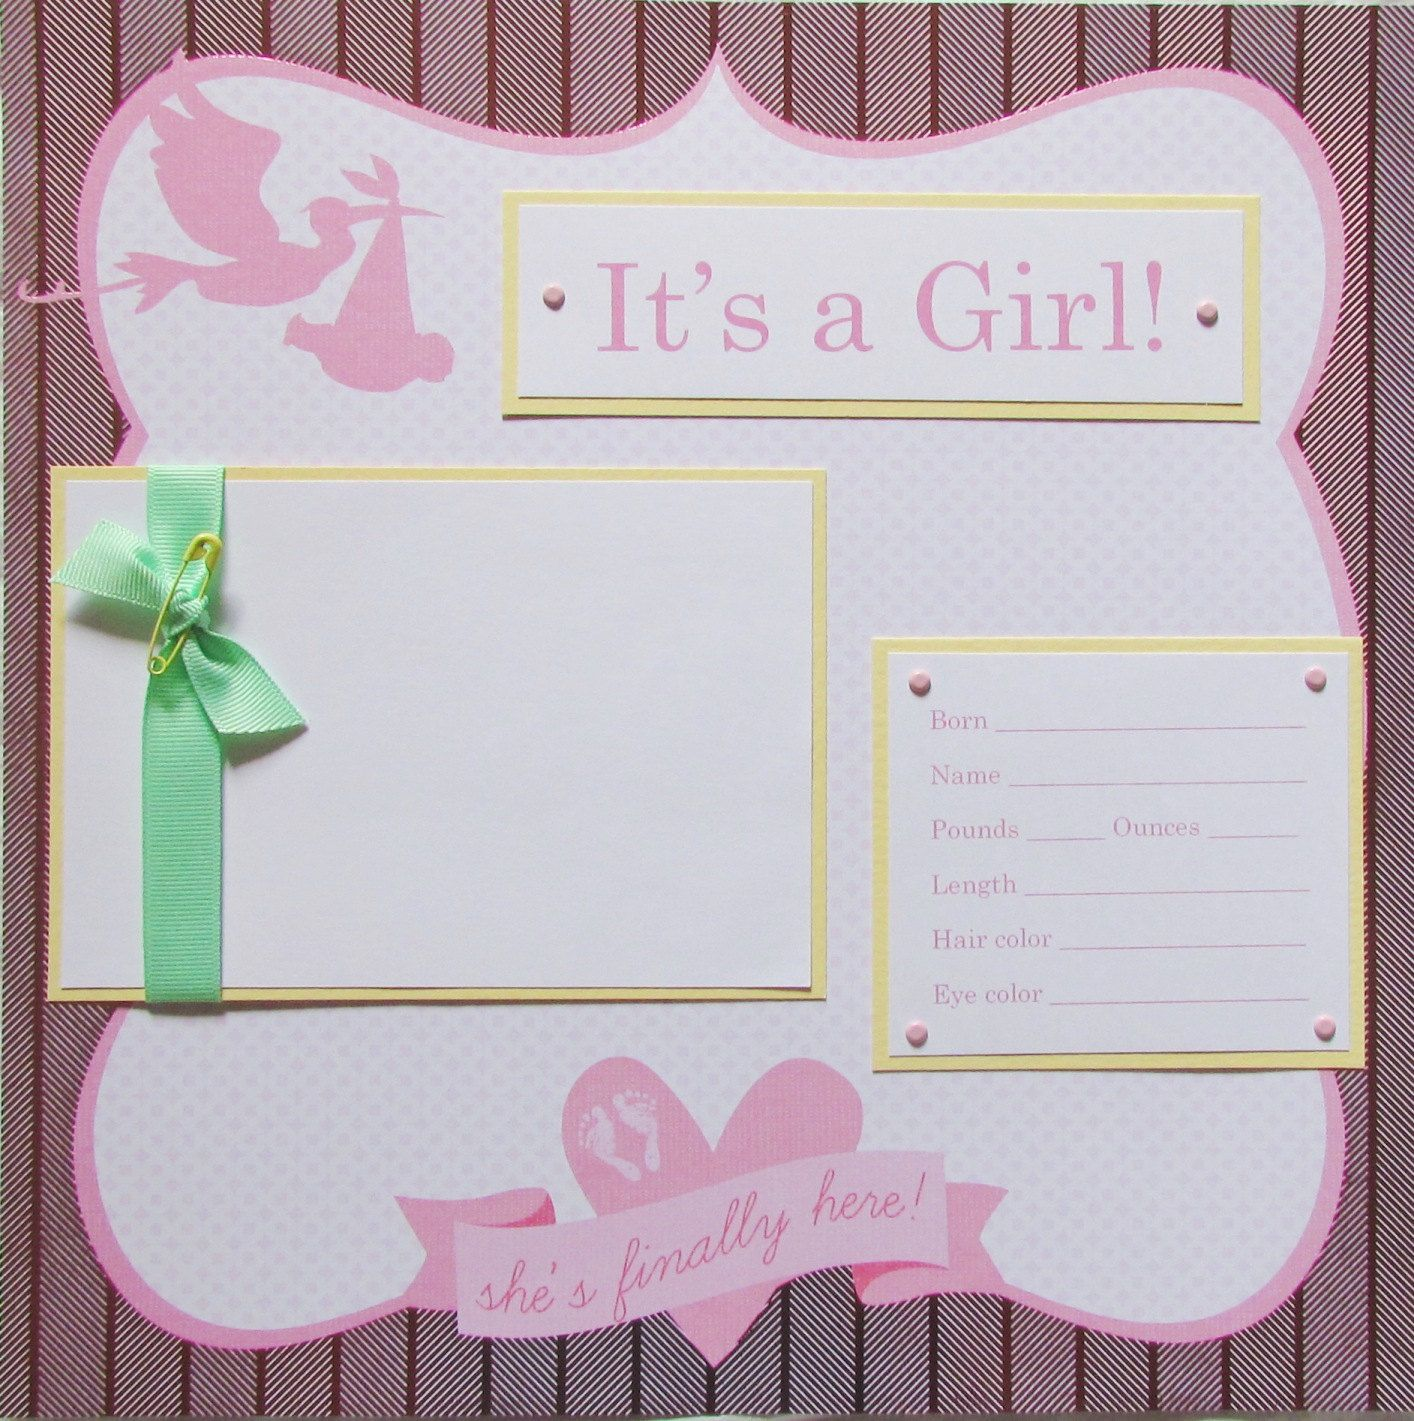 20 baby girl scrapbook pages for 12x12 first year album preppy and fun in pink yellow and green